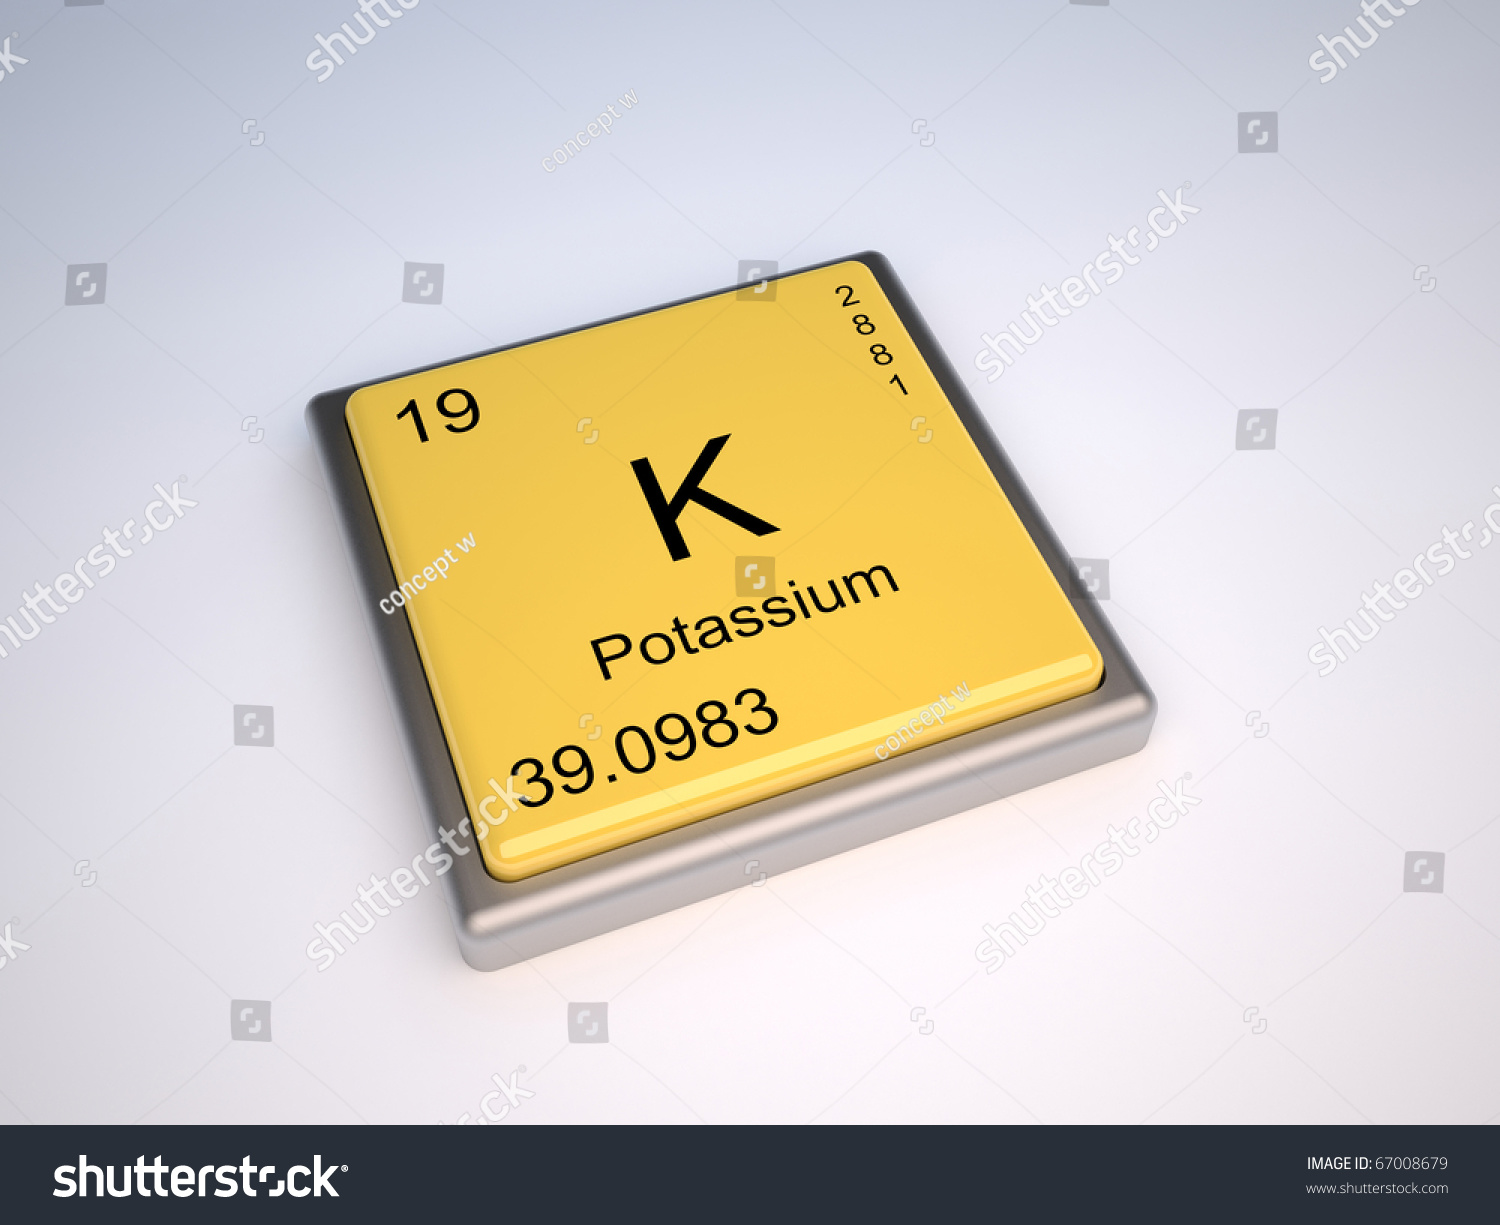 Potassium Chemical Element Periodic Table Symbol Stock Illustration